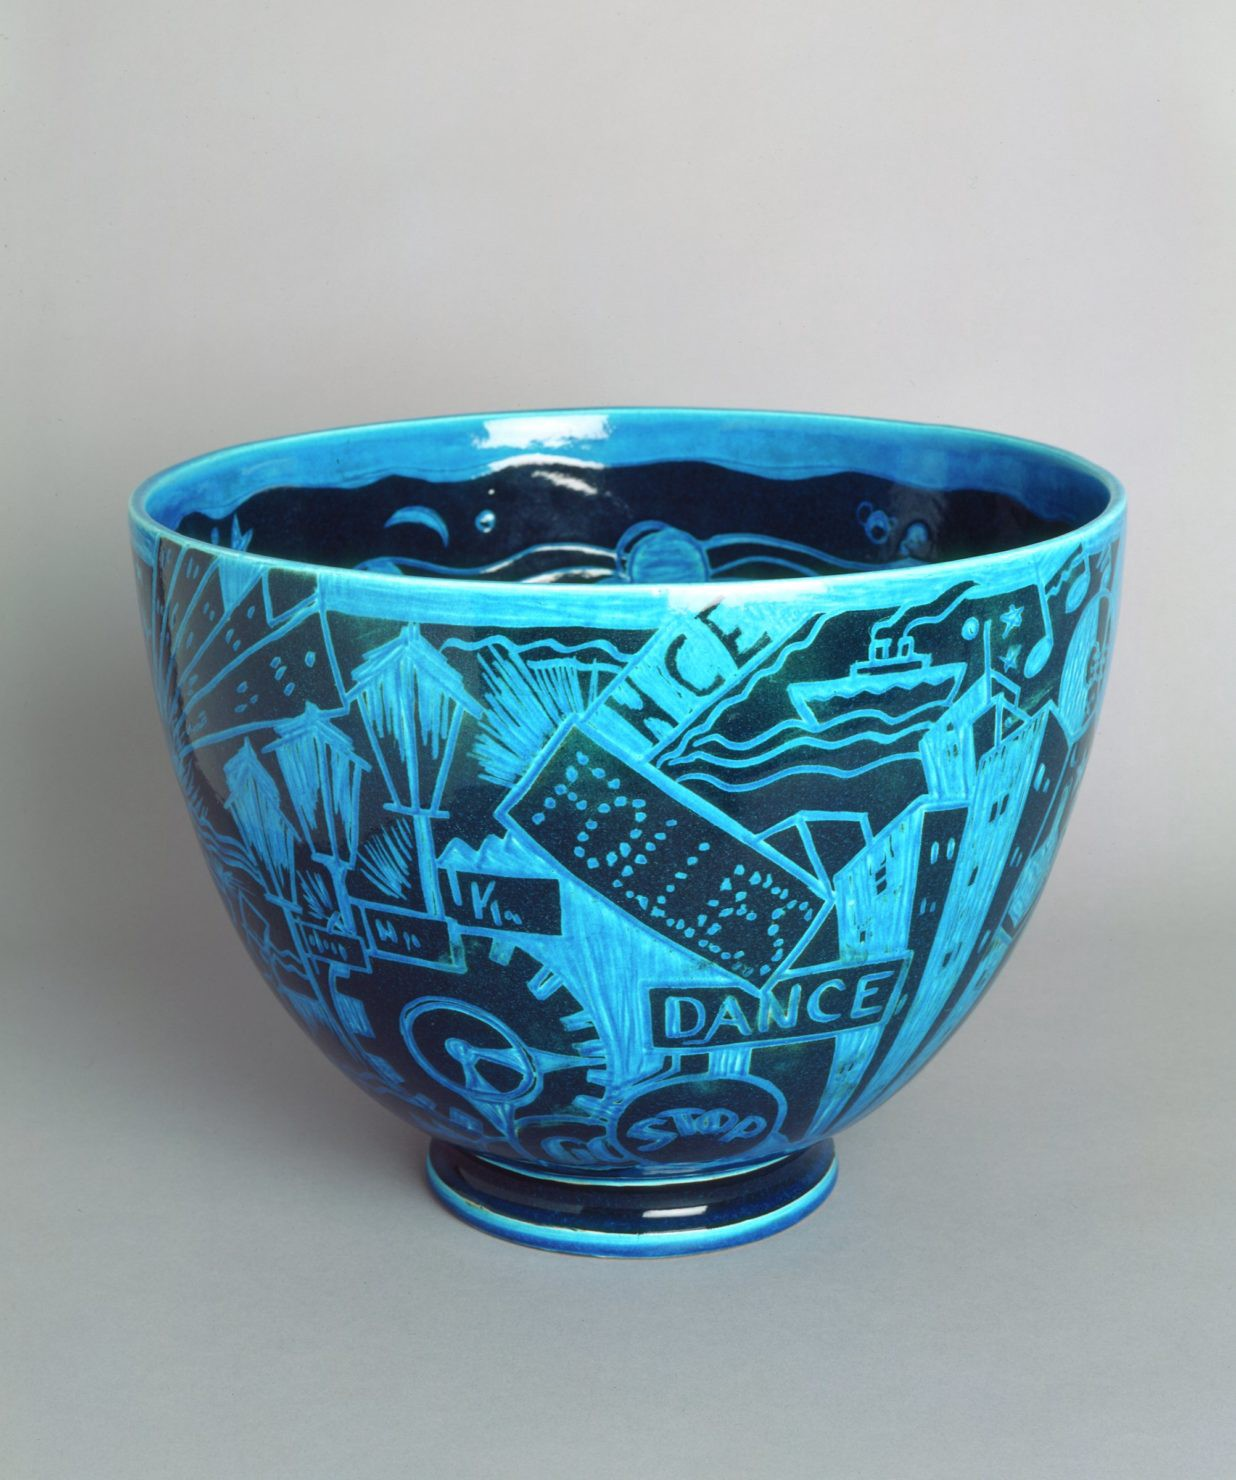 Black and blue ceramic bowl decorated with words and images related to jazz music in New York City.